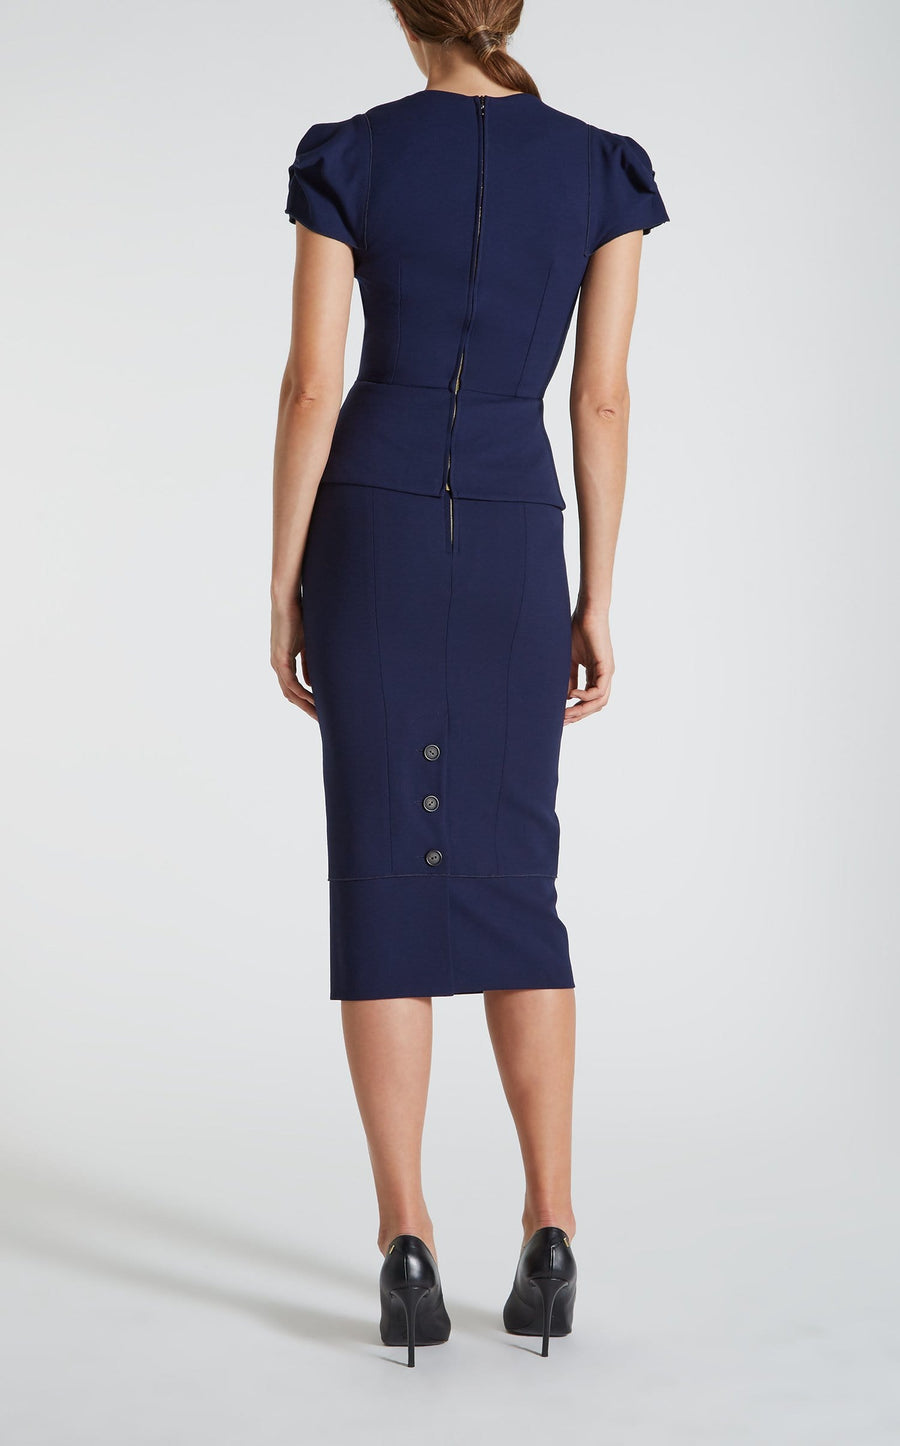 Galaxy Top In Navy from Roland Mouret